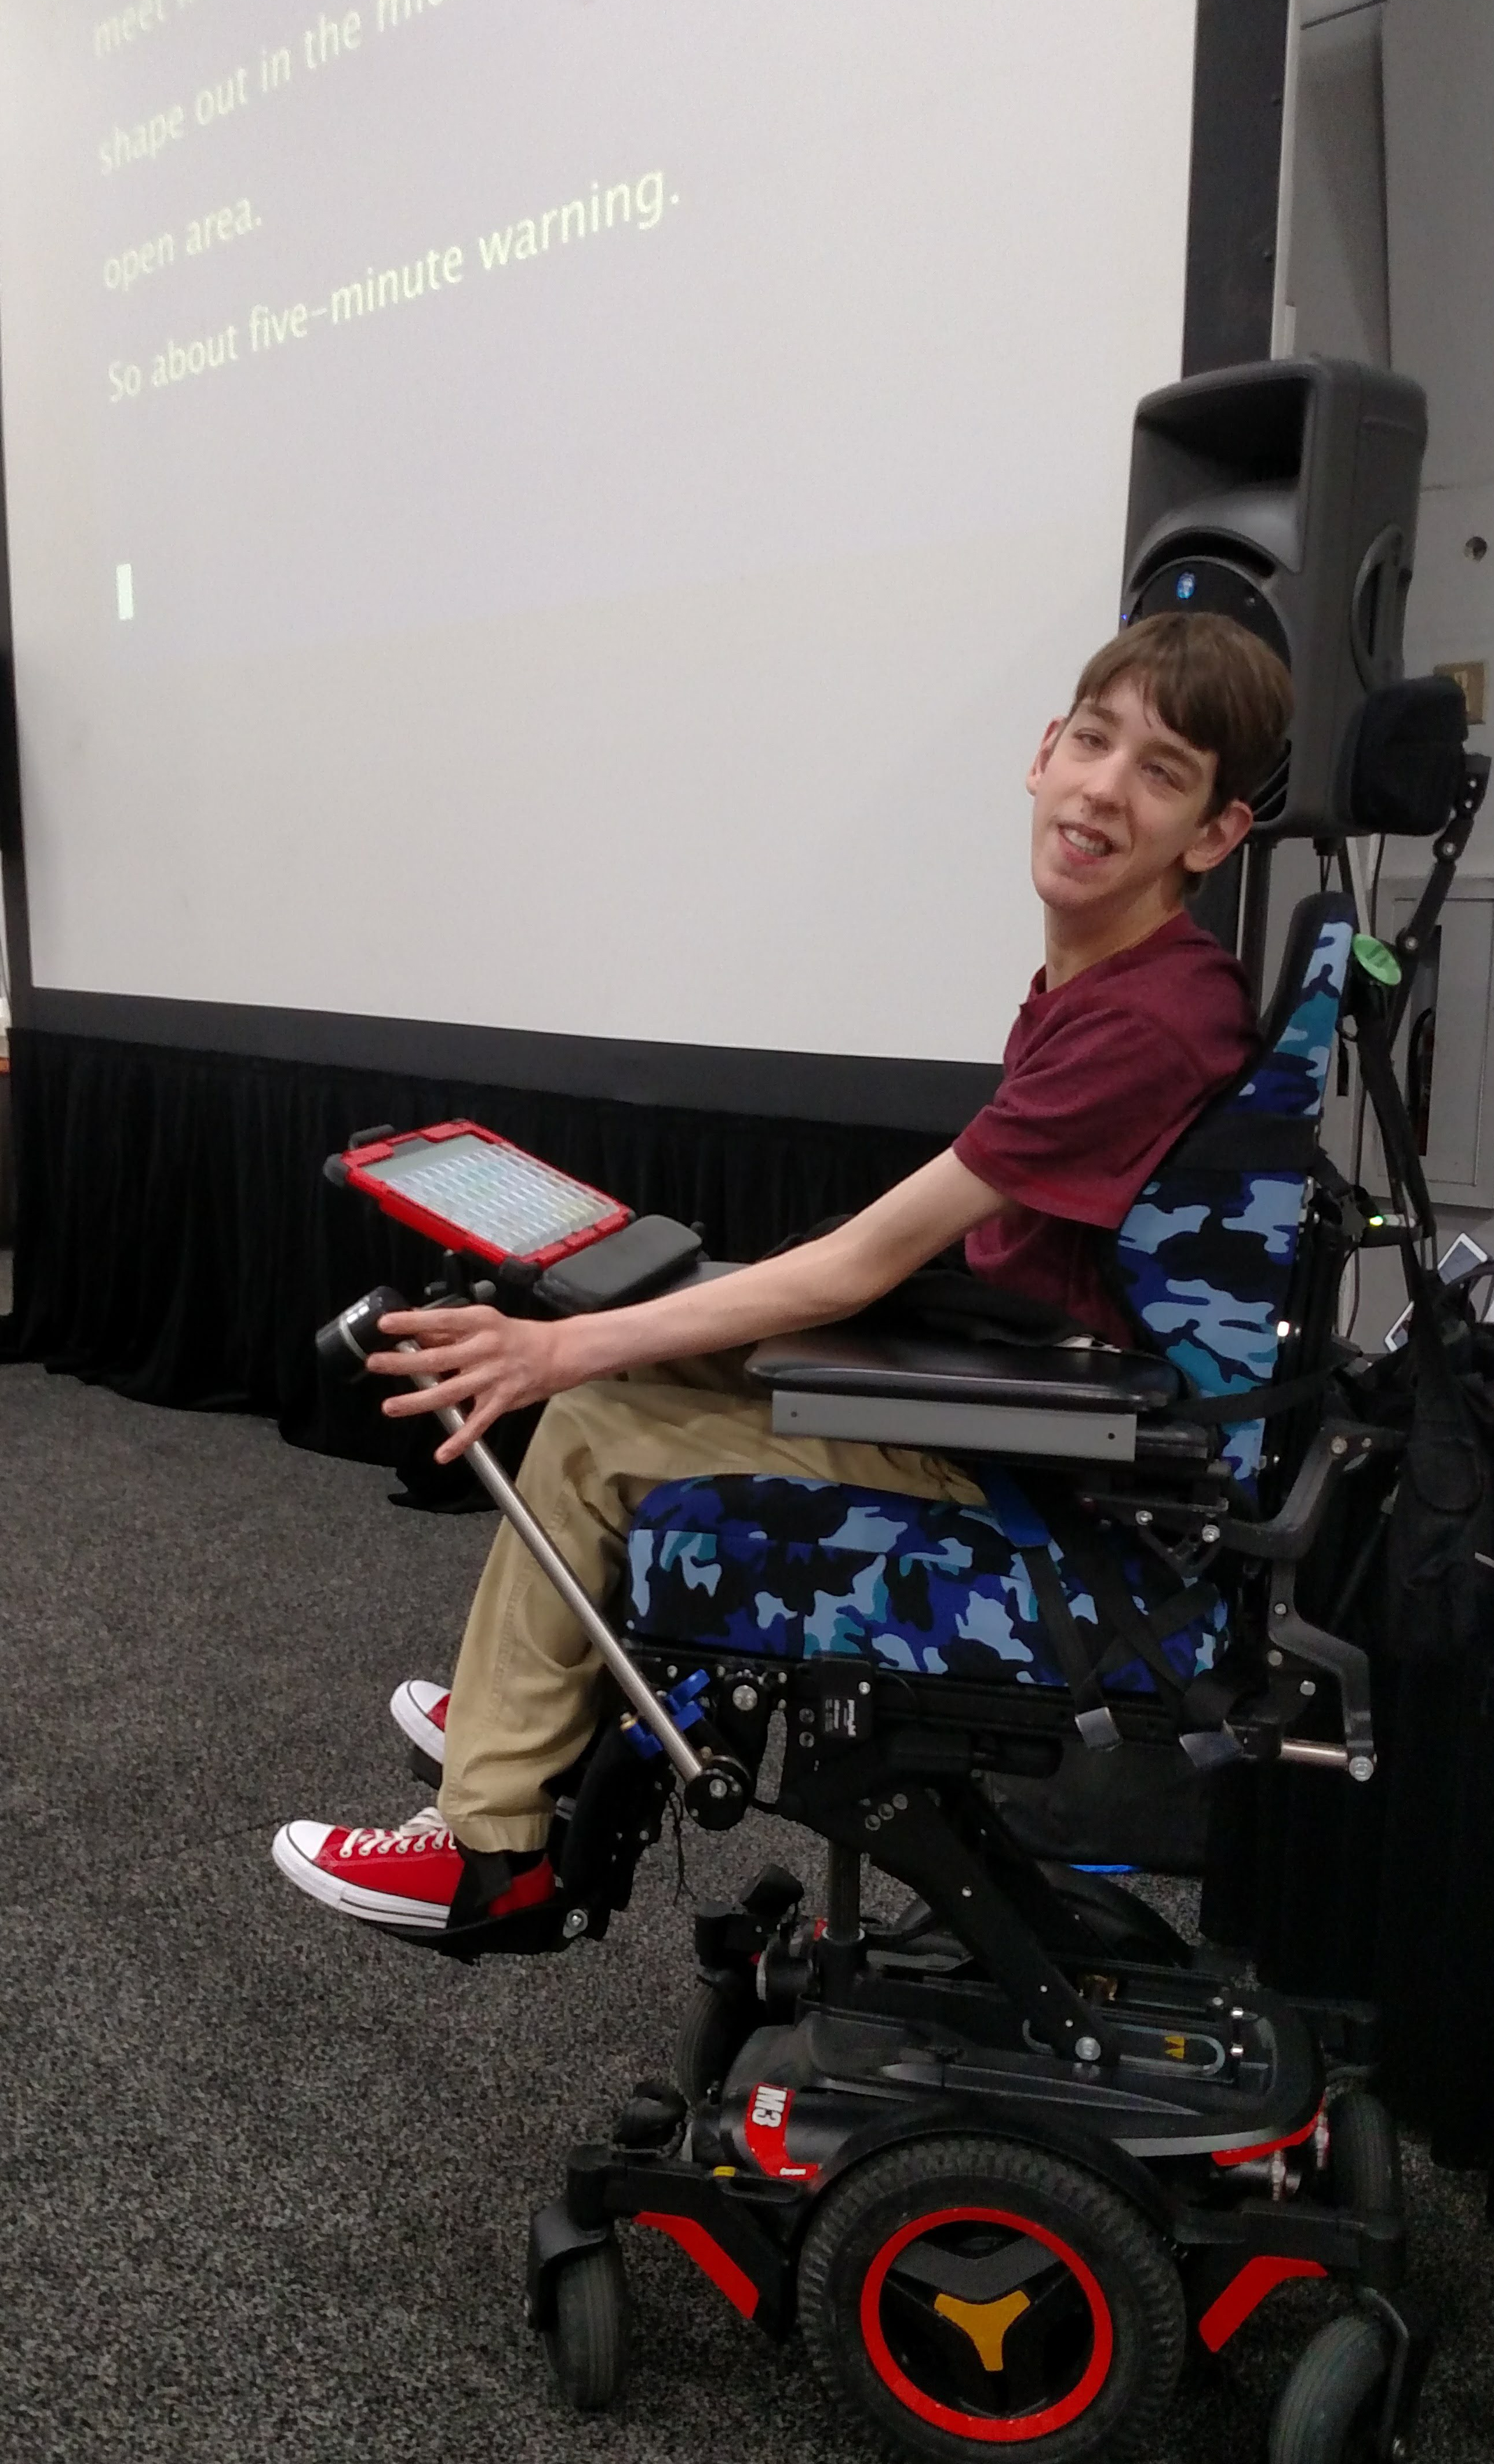 Justin in elevated wheelchair with screen displaying closed captions behind